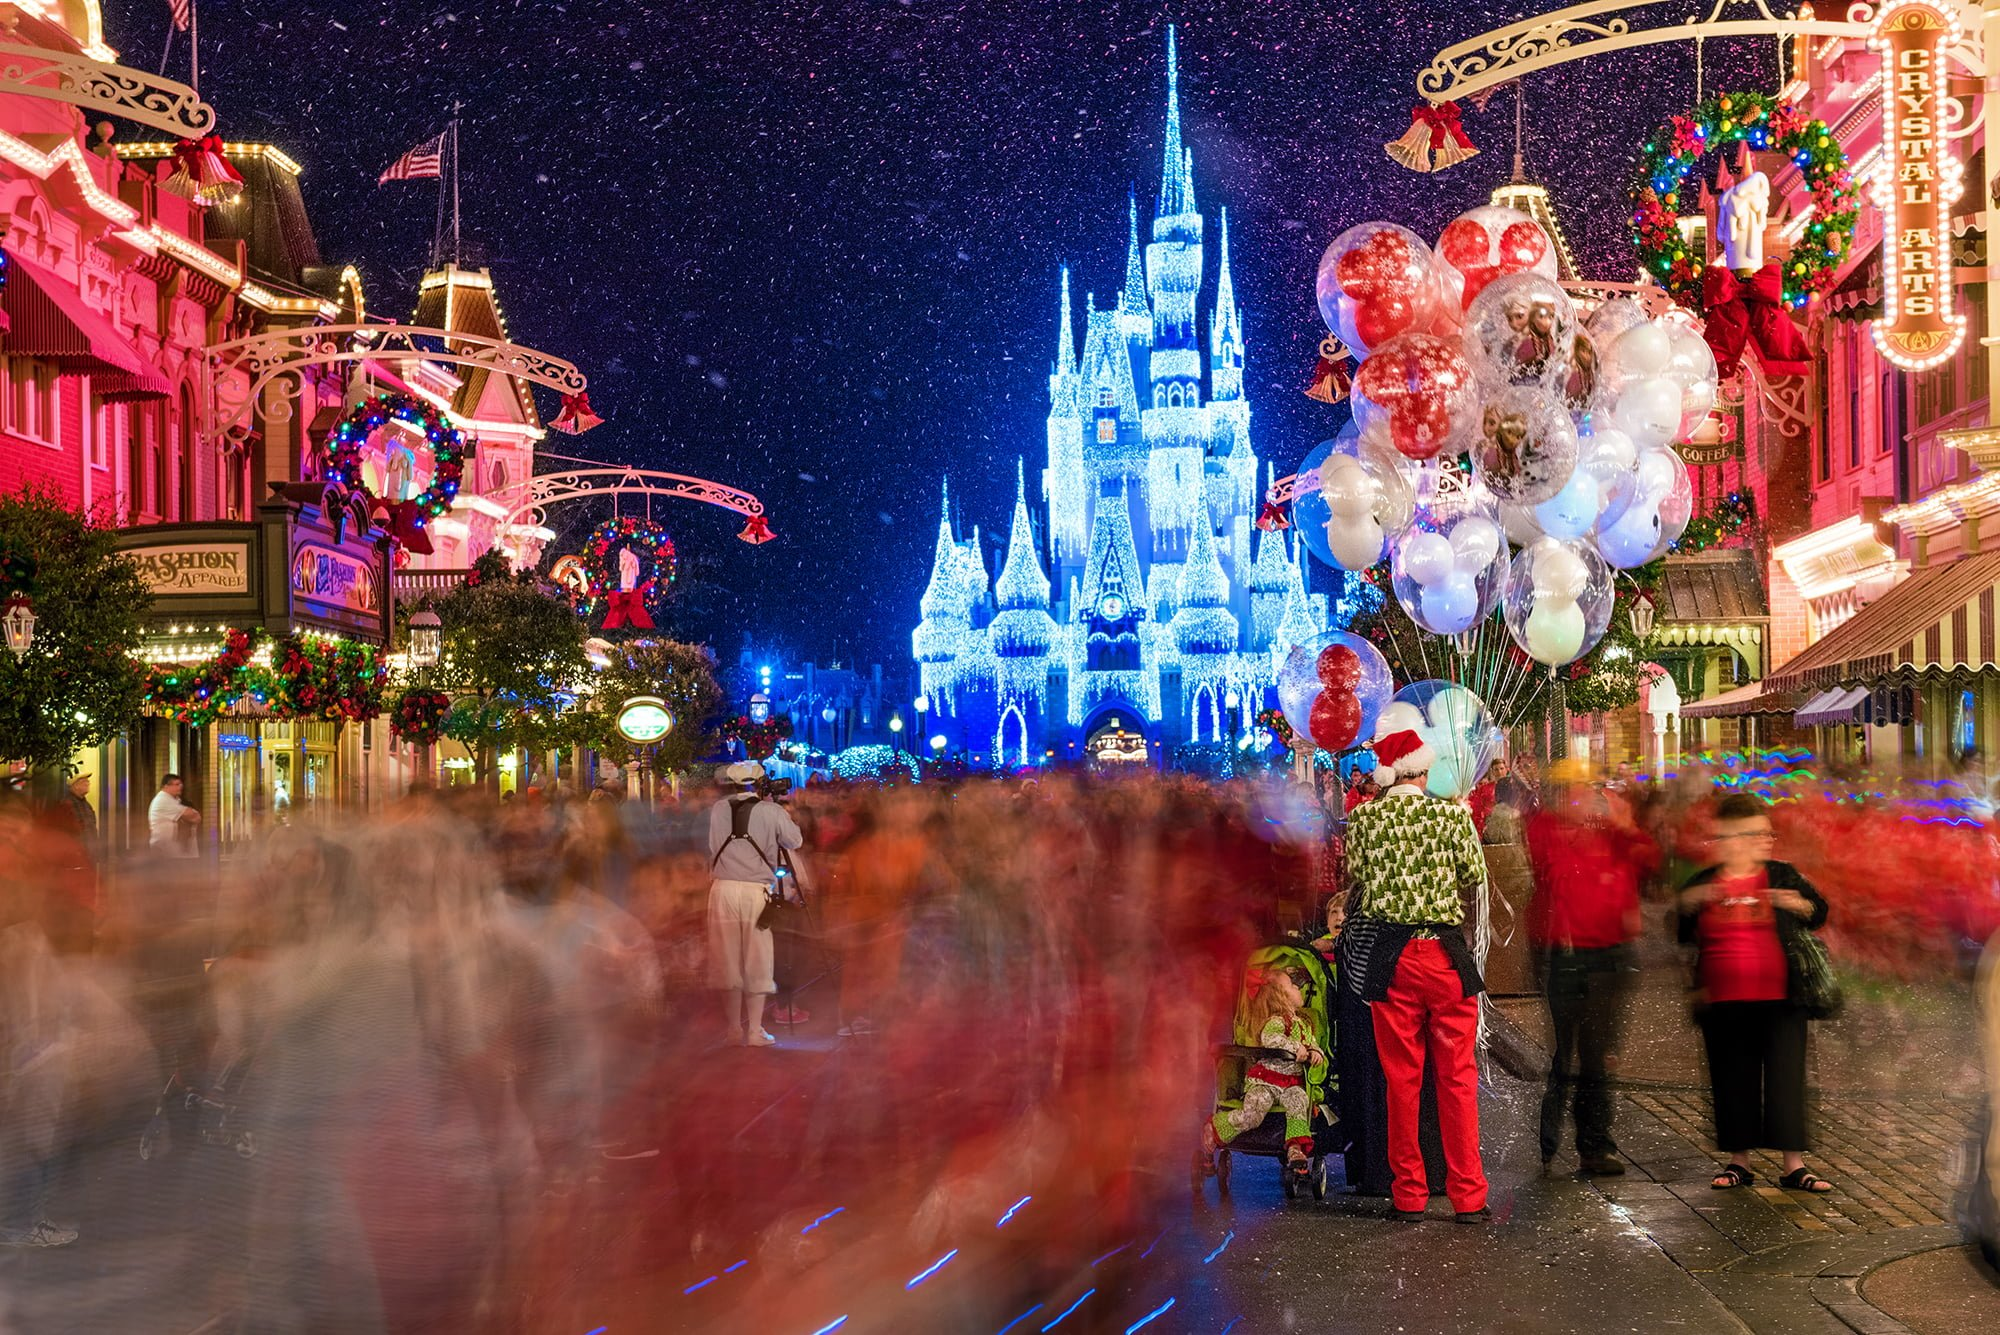 magic kingdom - When Is Disney Decorated For Christmas